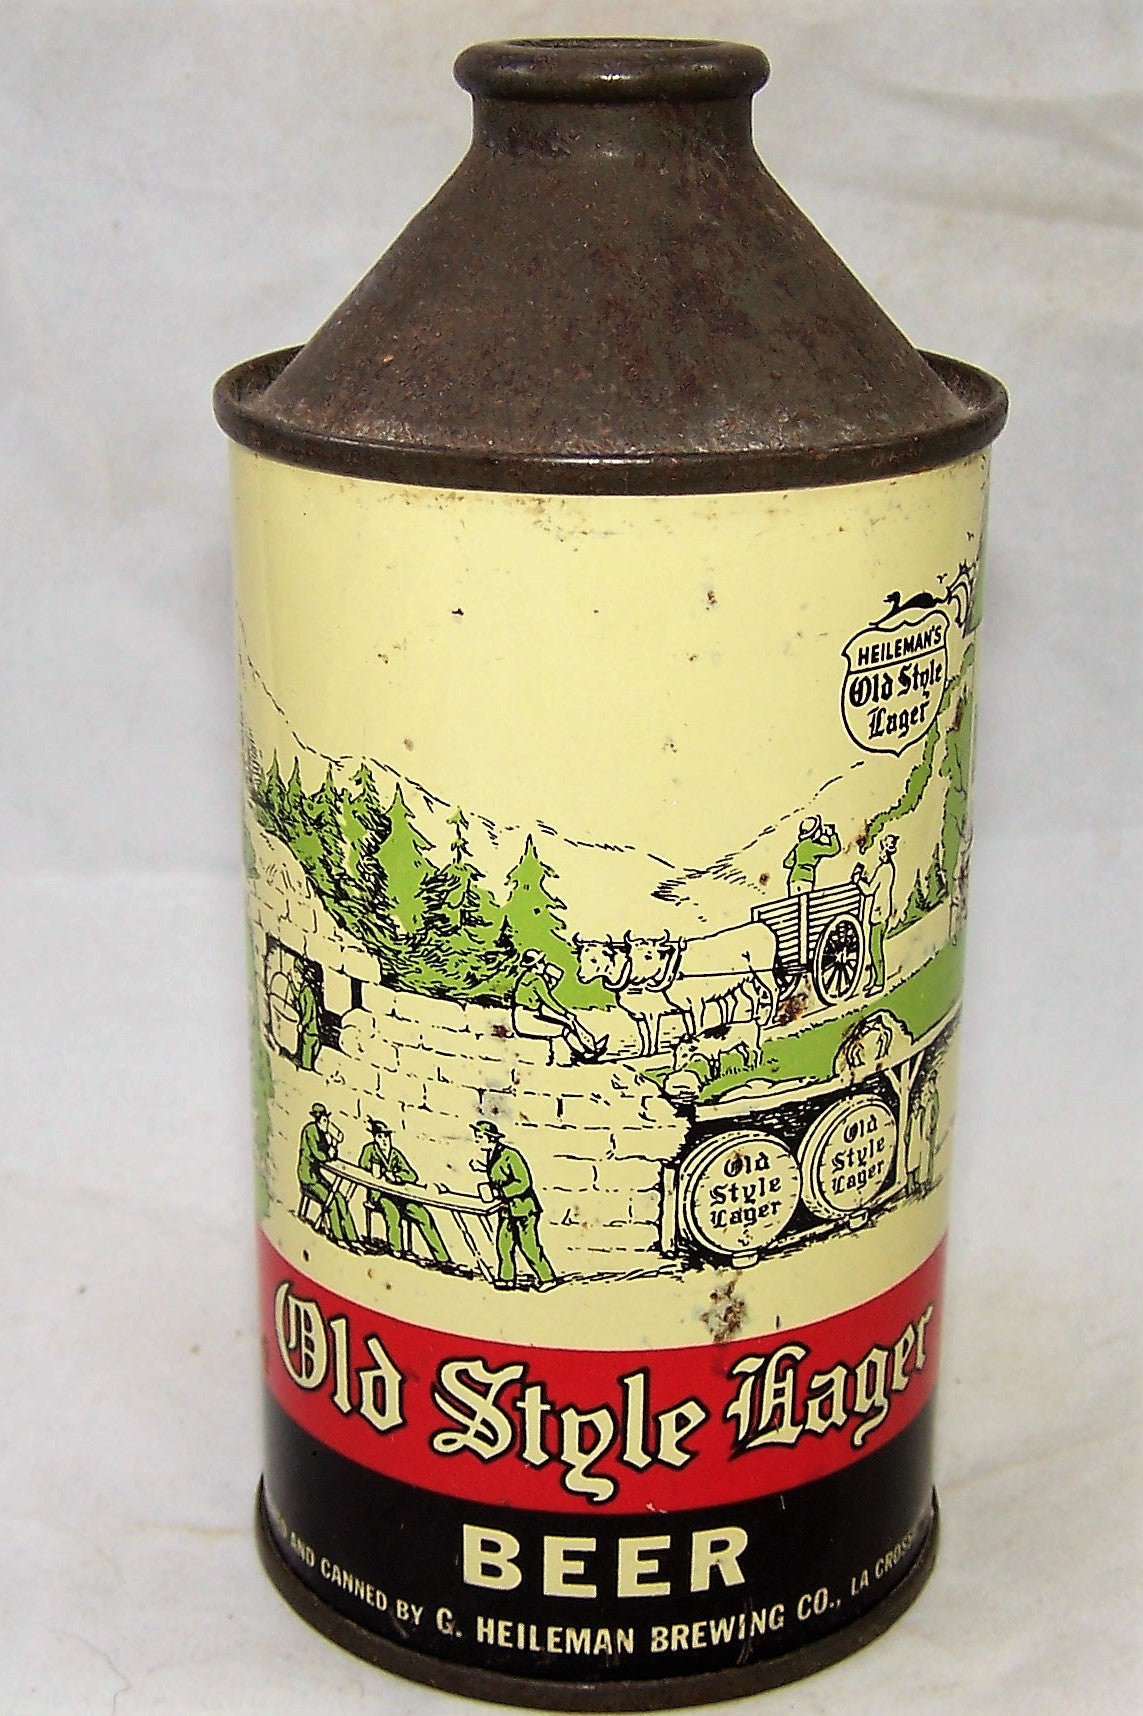 Old Style Lager Beer, DNCMT 4% USBC 177-18, Grade 1-  Sold